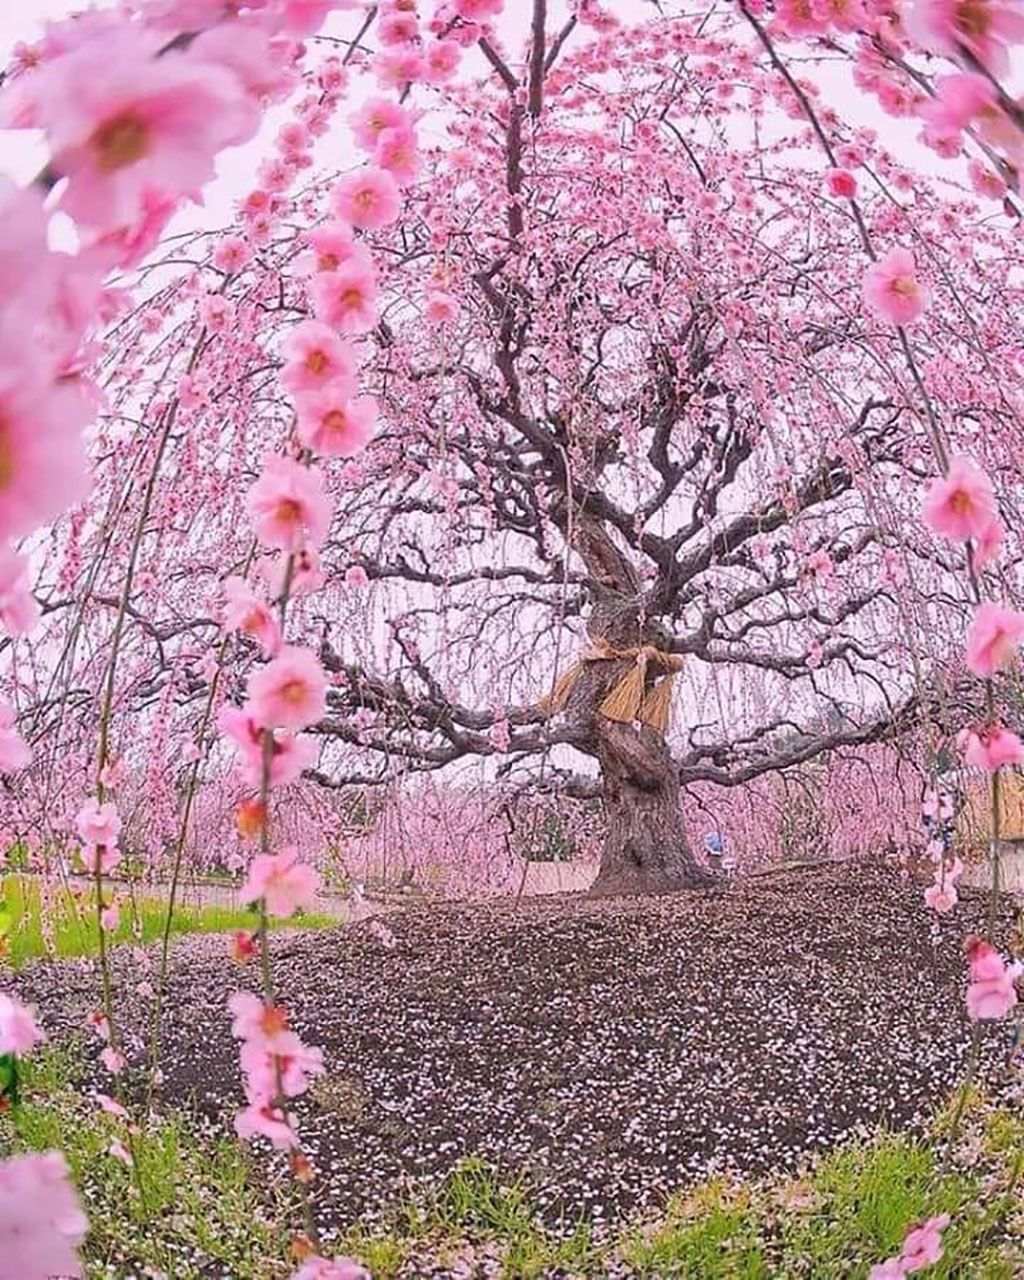 200 Year Old Cherry Blossom Tree In Japan Blossom Trees Cherry Blossom Tree Sakura Tree